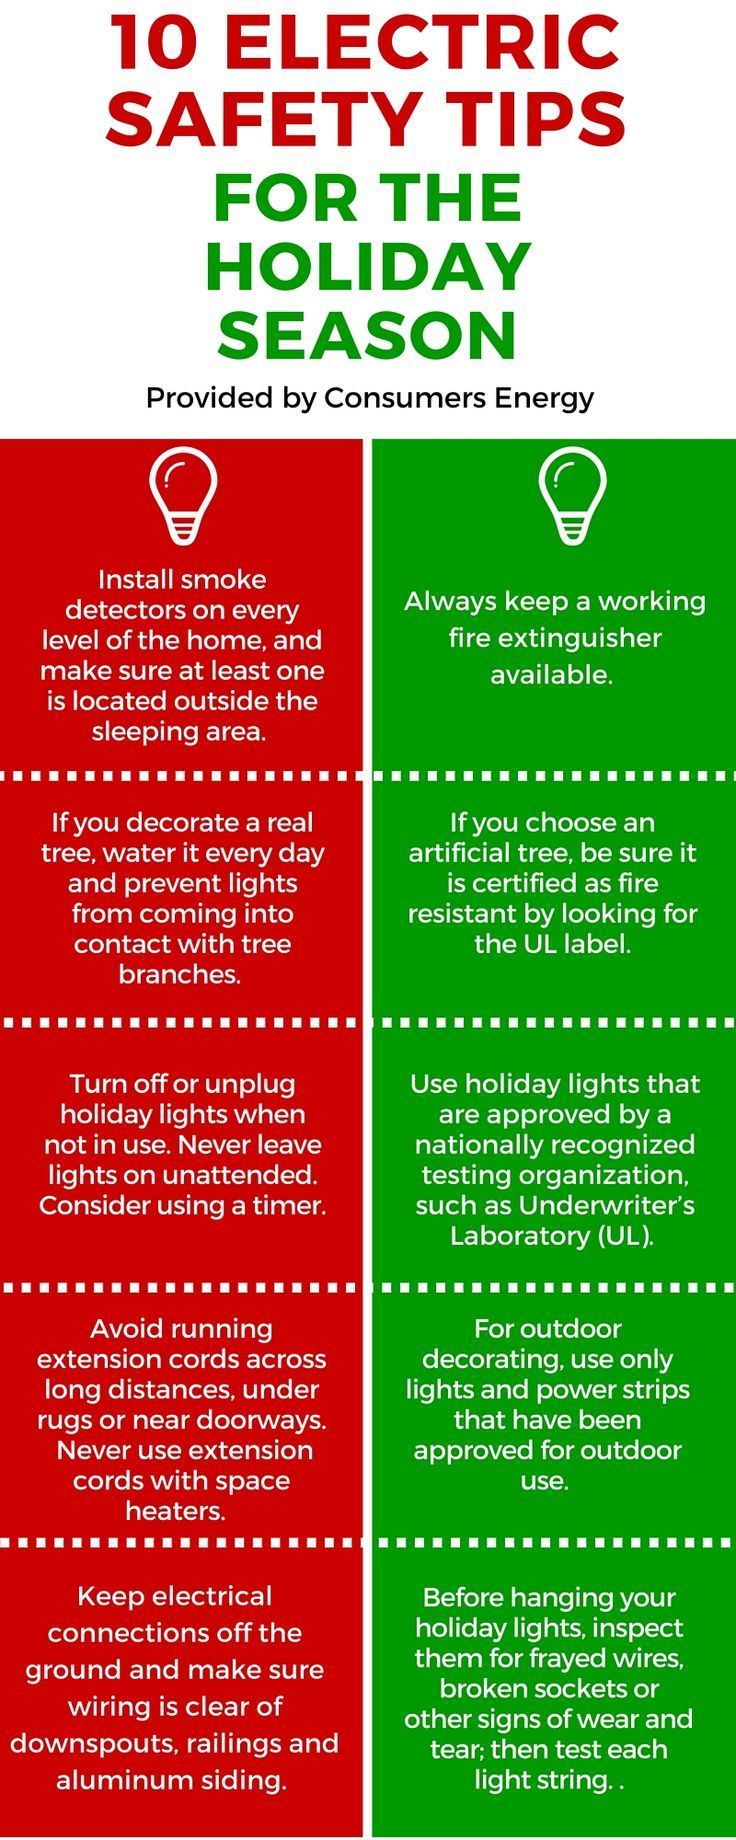 Consumers Energy offers 10 Electric Safety Tips to keep you and your family safe during the holiday season!